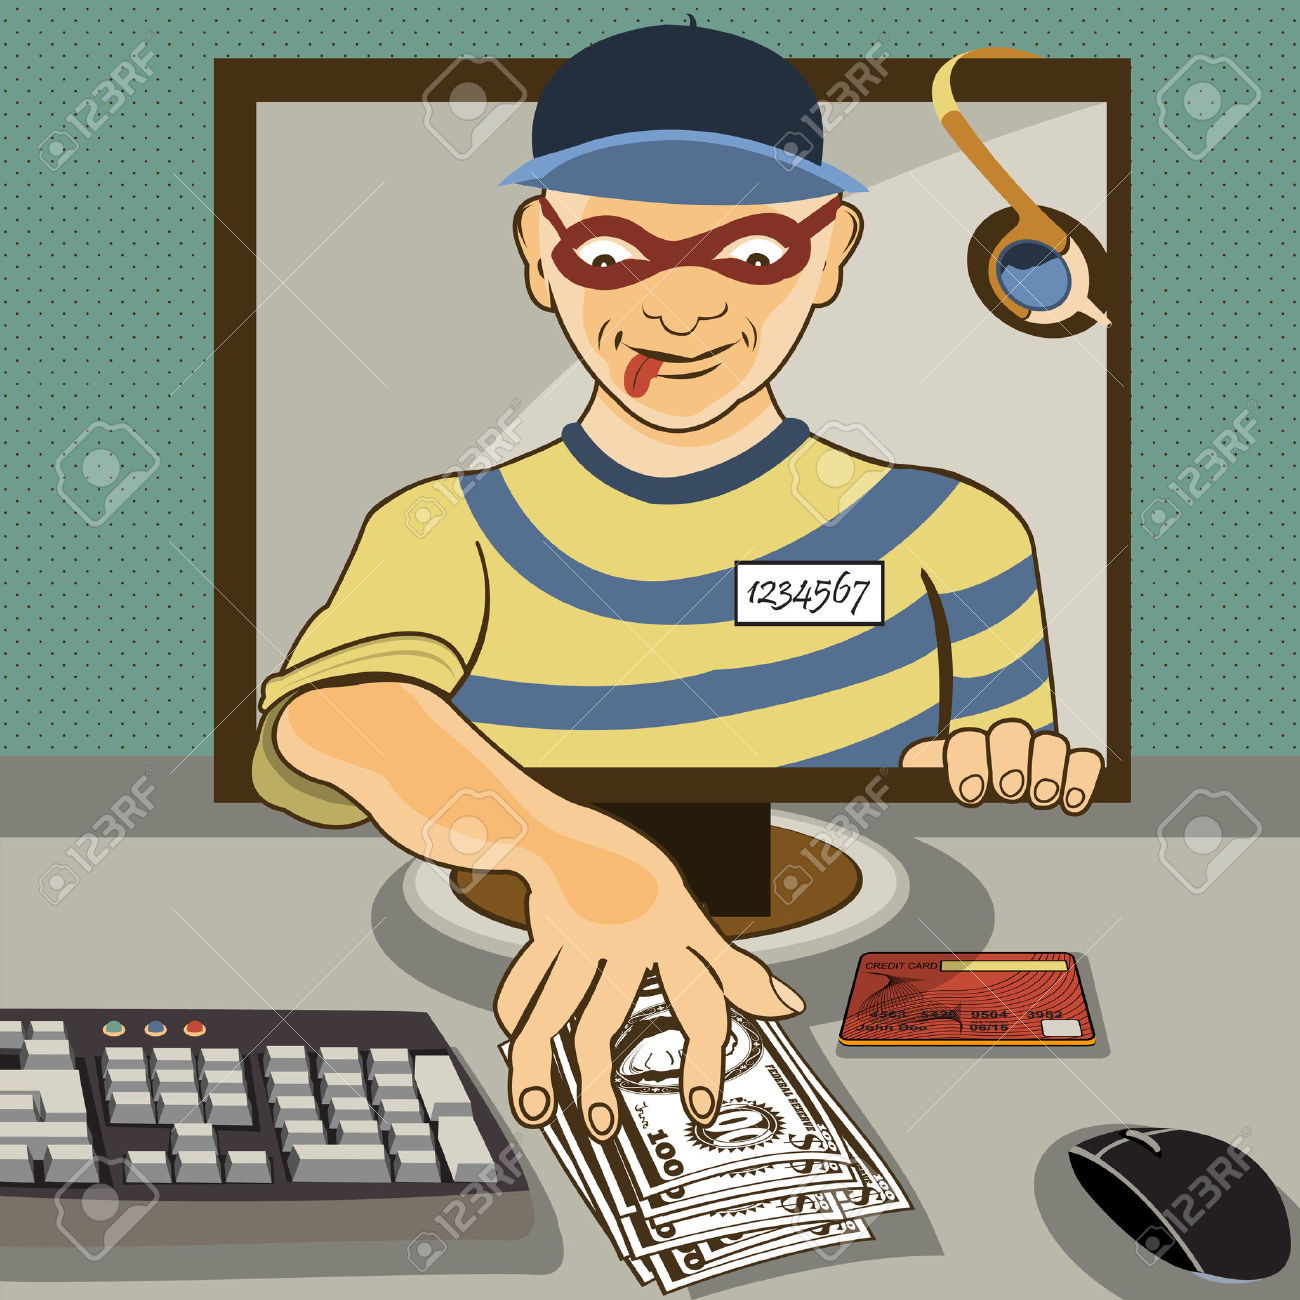 Vector Illustration Of A Man From A Computer Monitor Stealing.